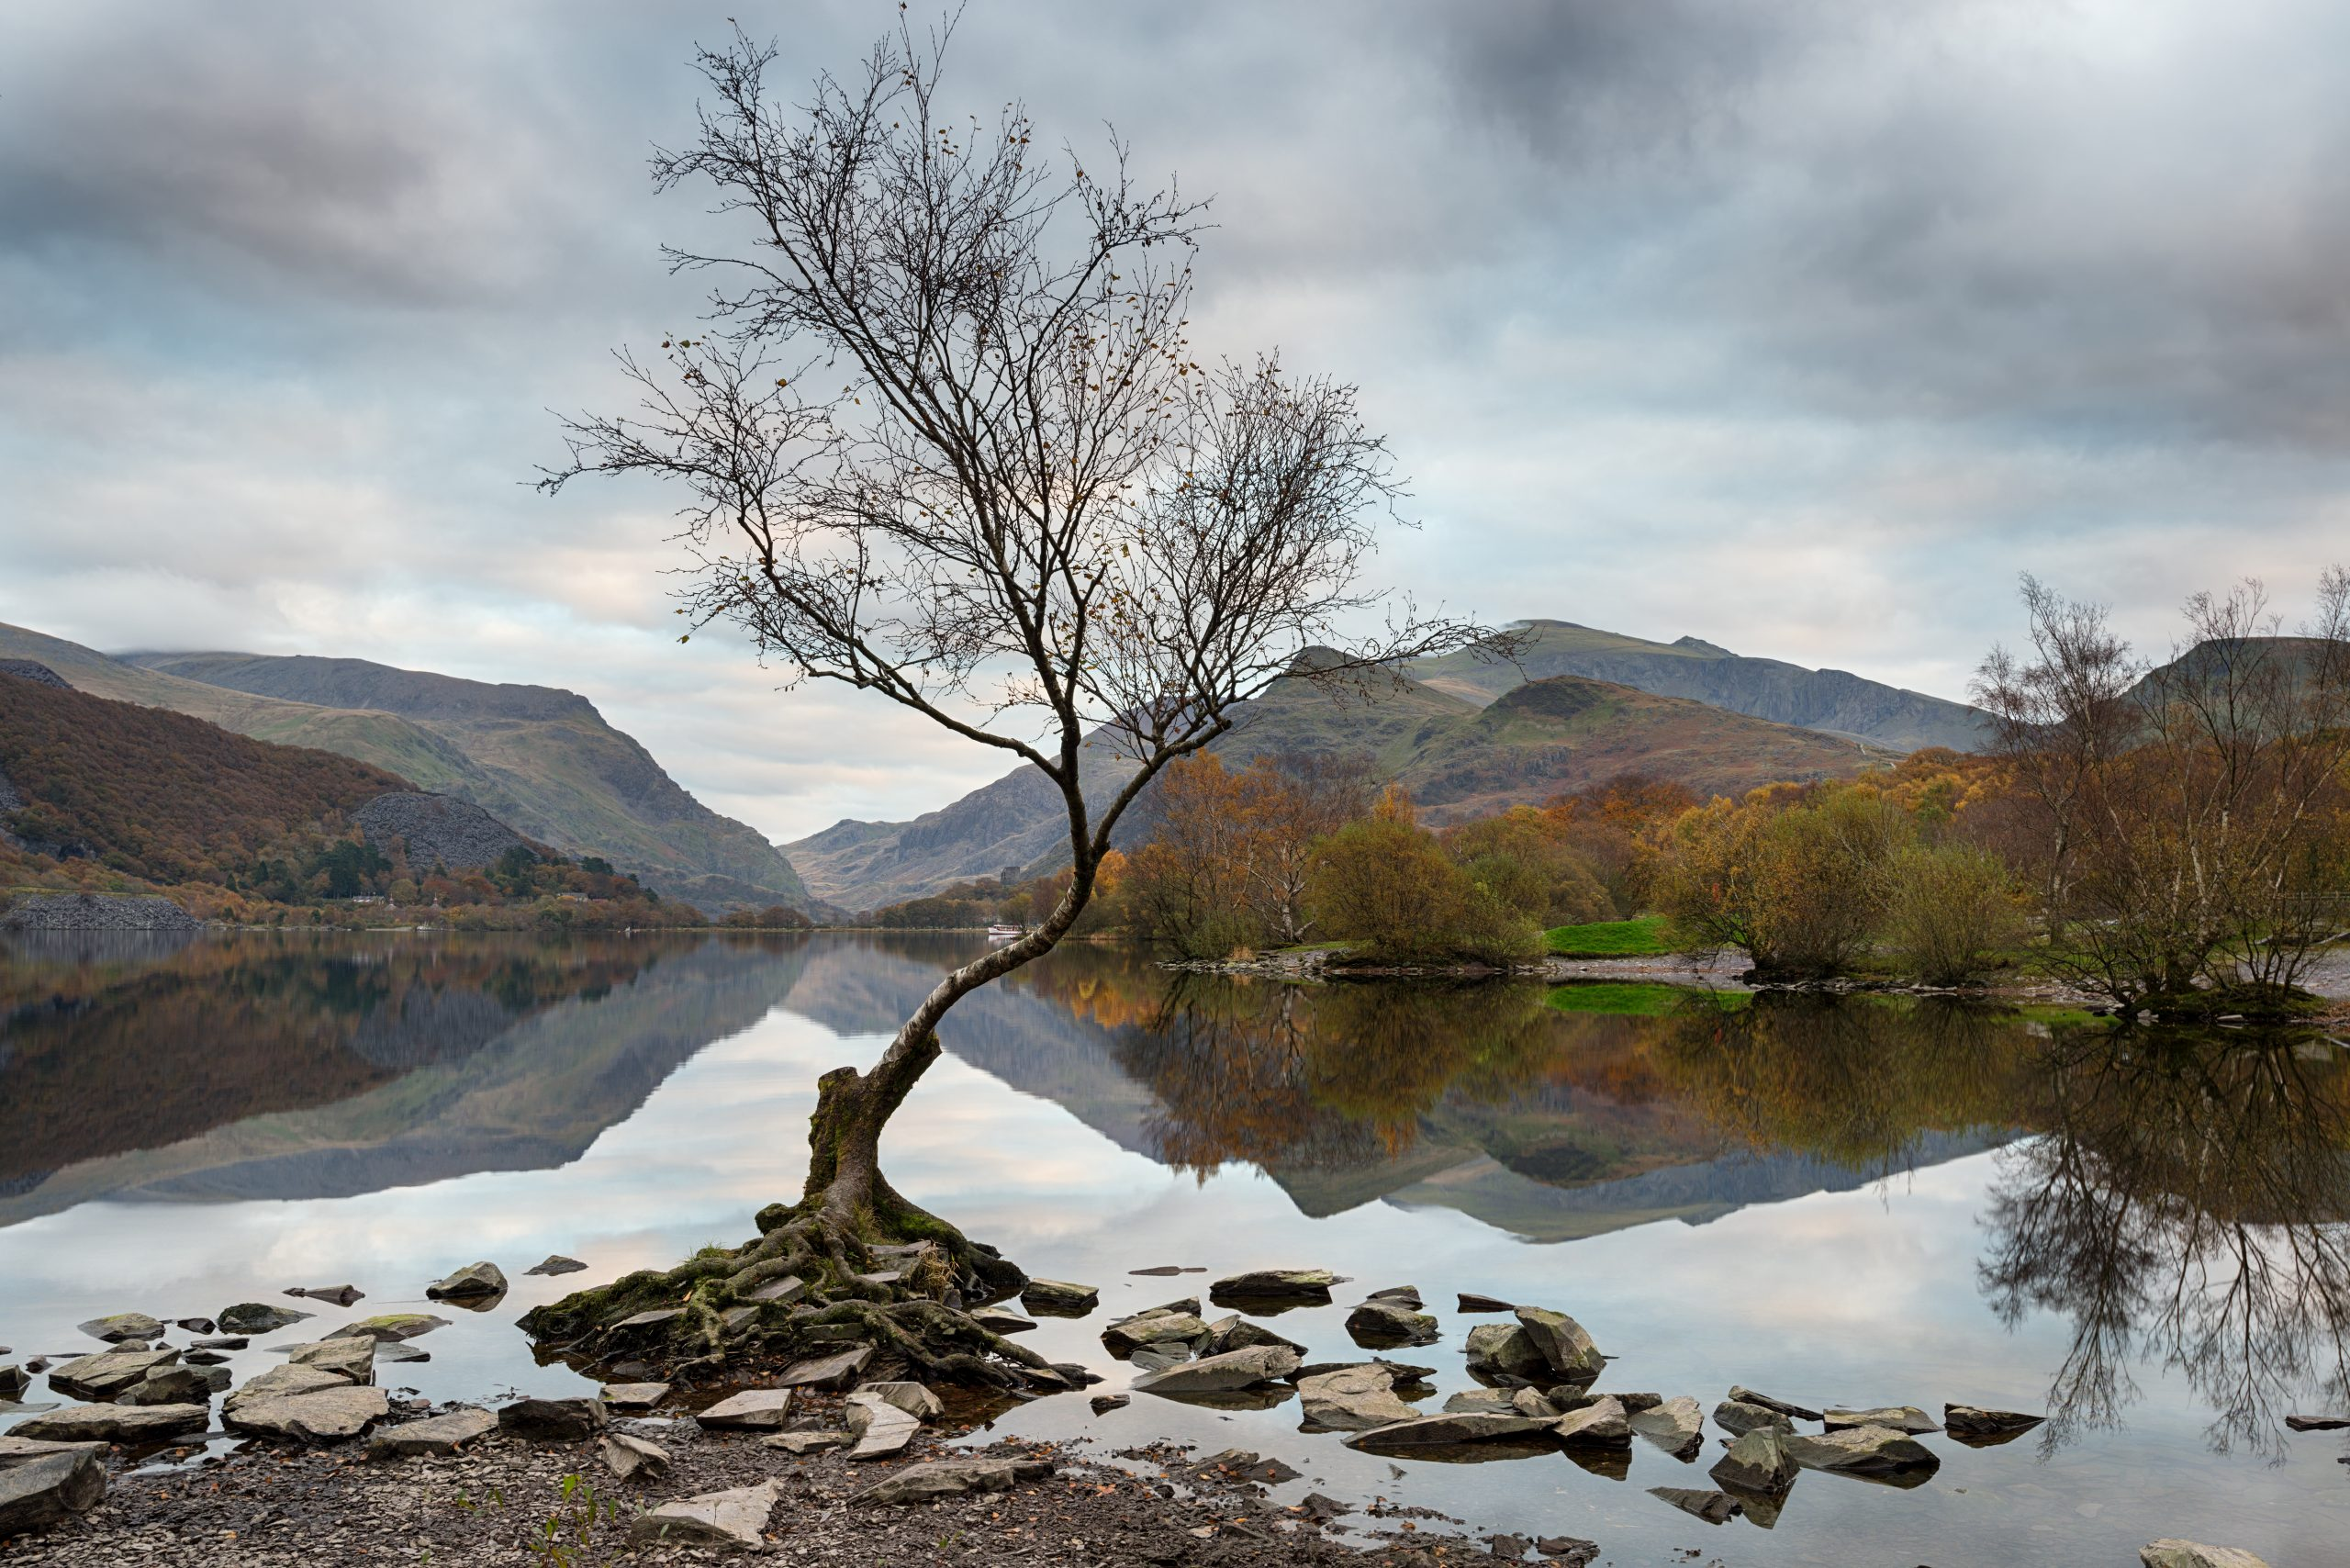 Snowdonia in the autumn time by a lake with a birch tree at the edge and mountains in the distance.